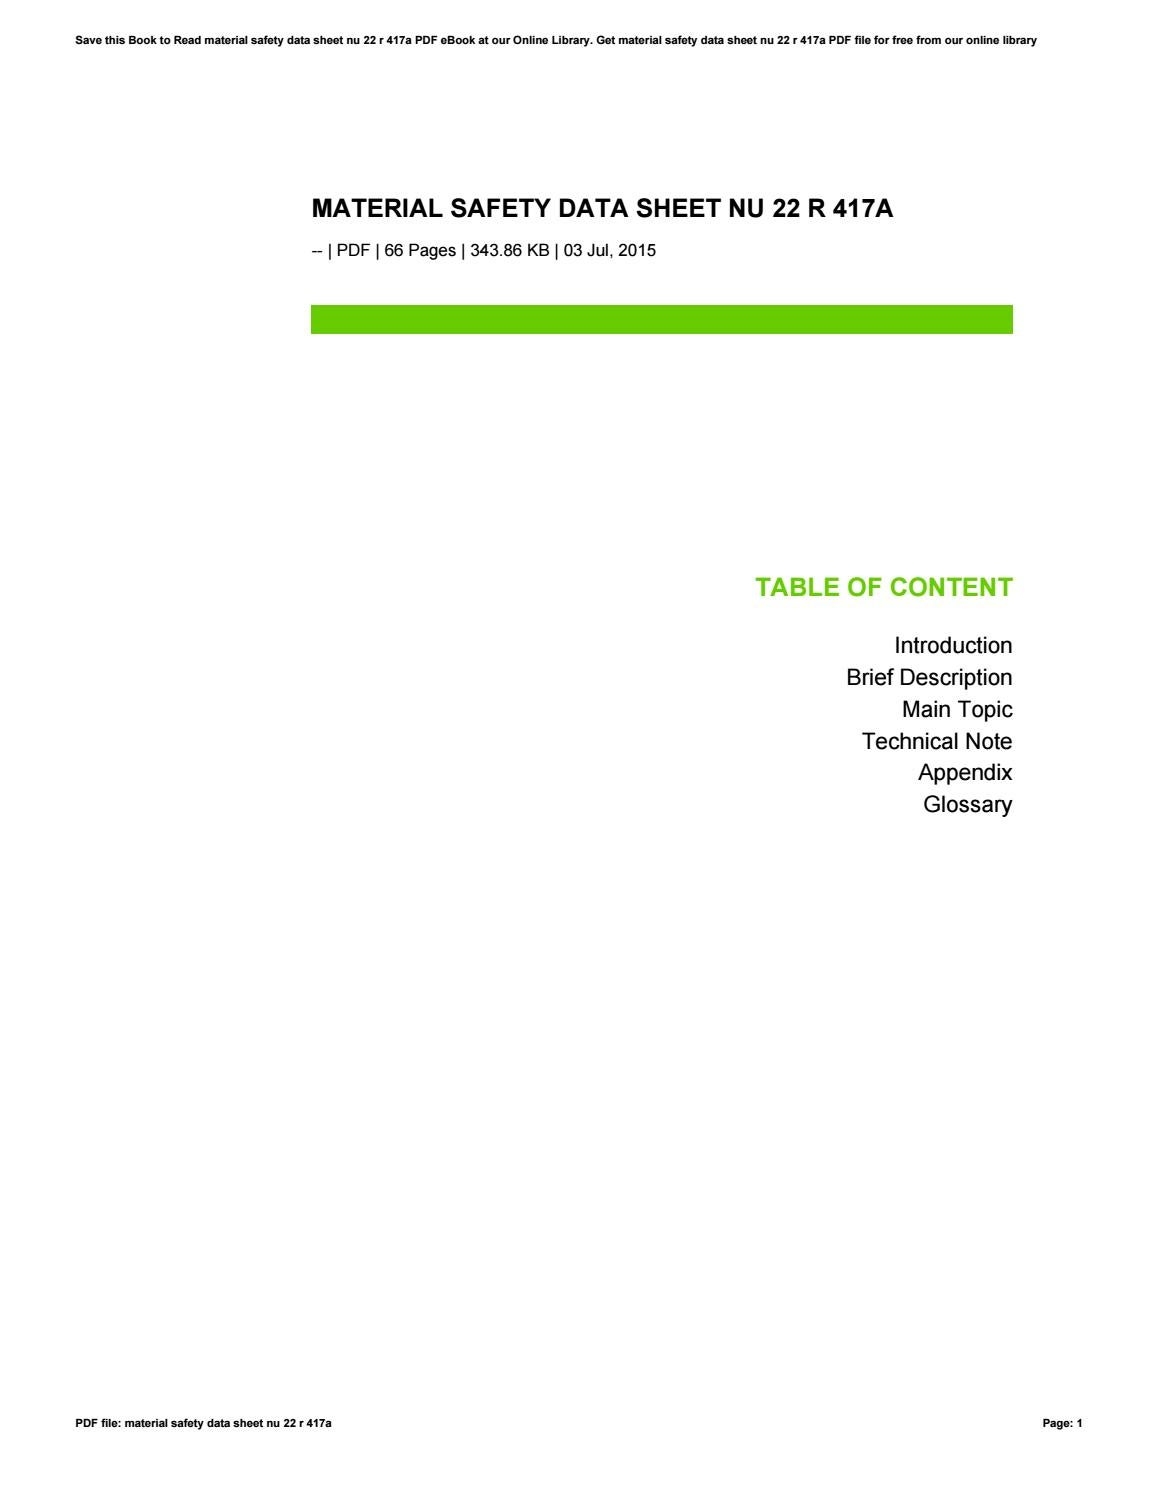 Material safety data sheet nu 22 r 417a by fitta29sutrisni